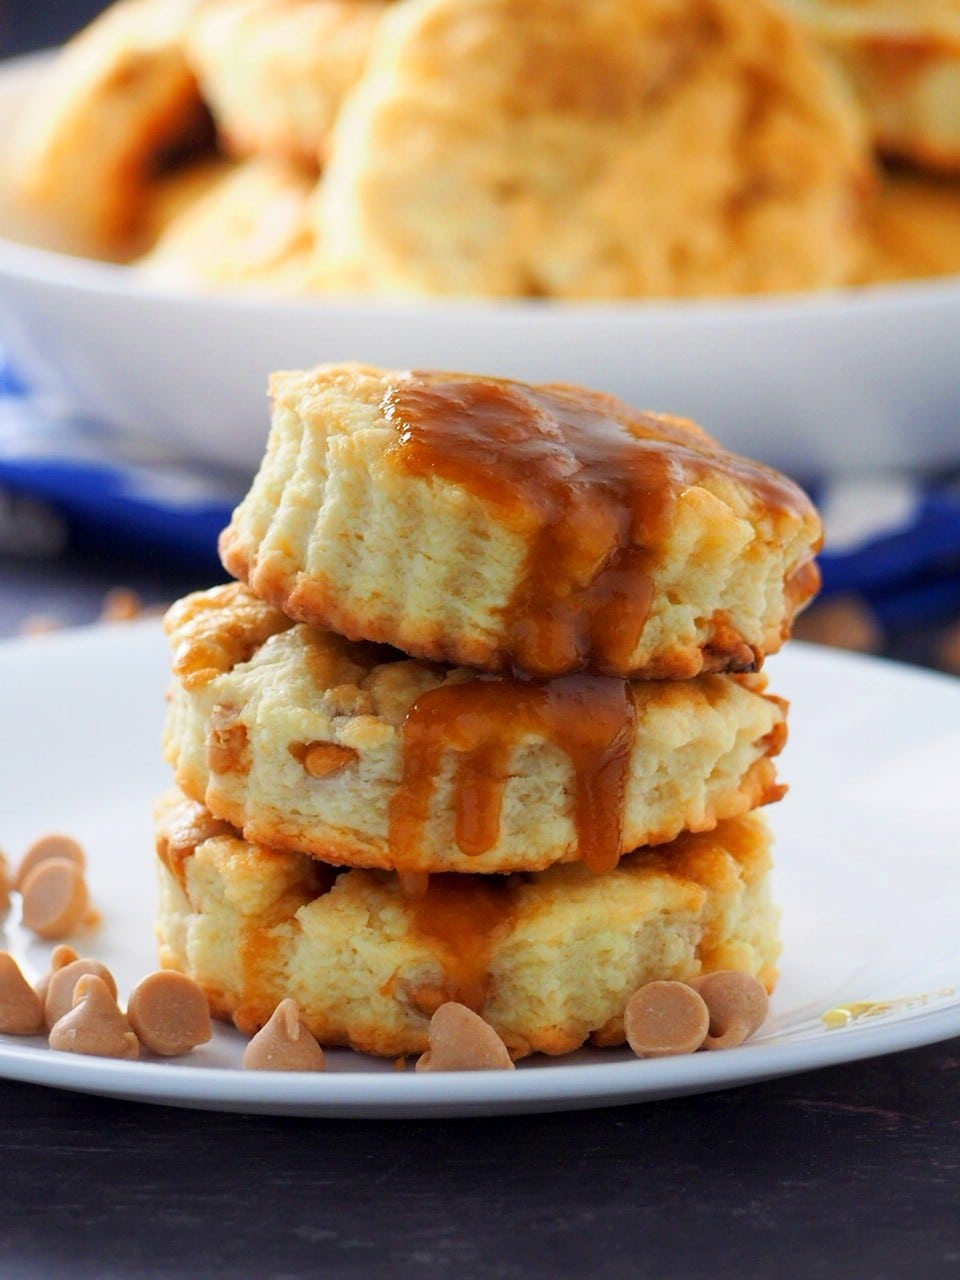 Salted Caramel Scones stacked in a plate and surrounded by caramel chips.